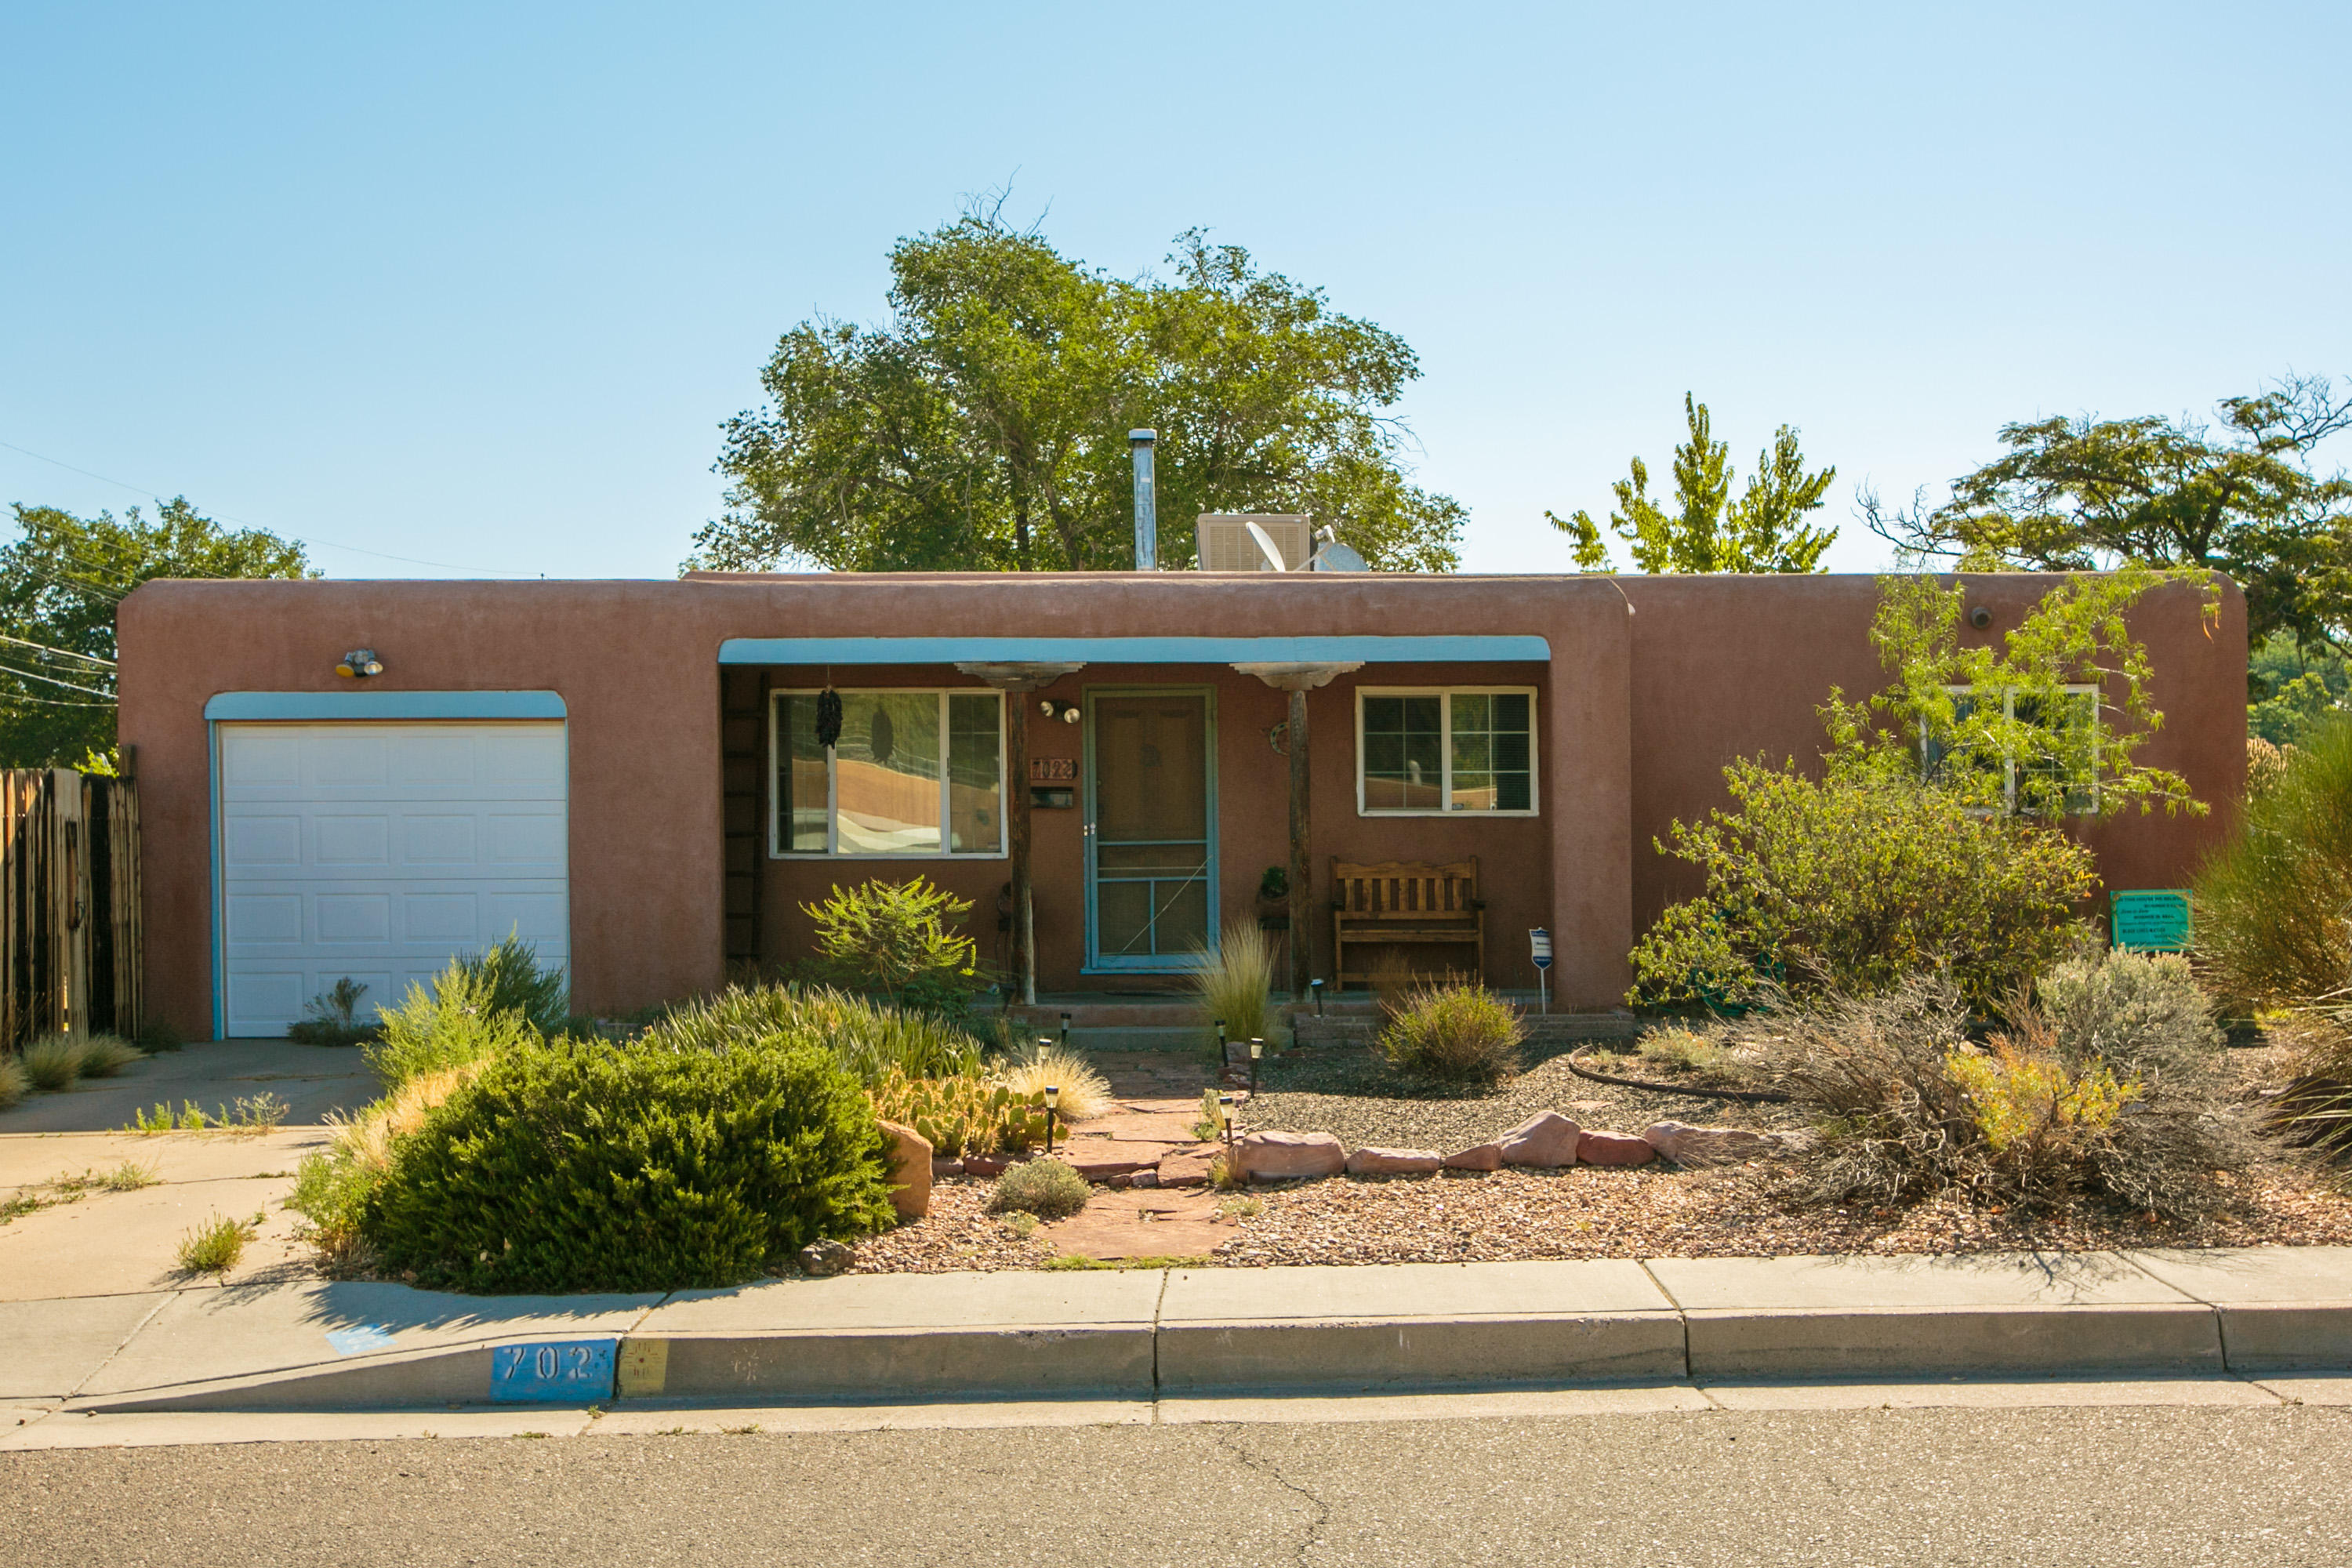 Charming home on corner lot with backyard access, Wood floors, tile in kitchen and bath. Newer hot water heater and evaporative air within the last 2 years. Washer/Dryer/Refrigerator included. Quiet, established neighborhood, close to UNM downtown, nob hill.